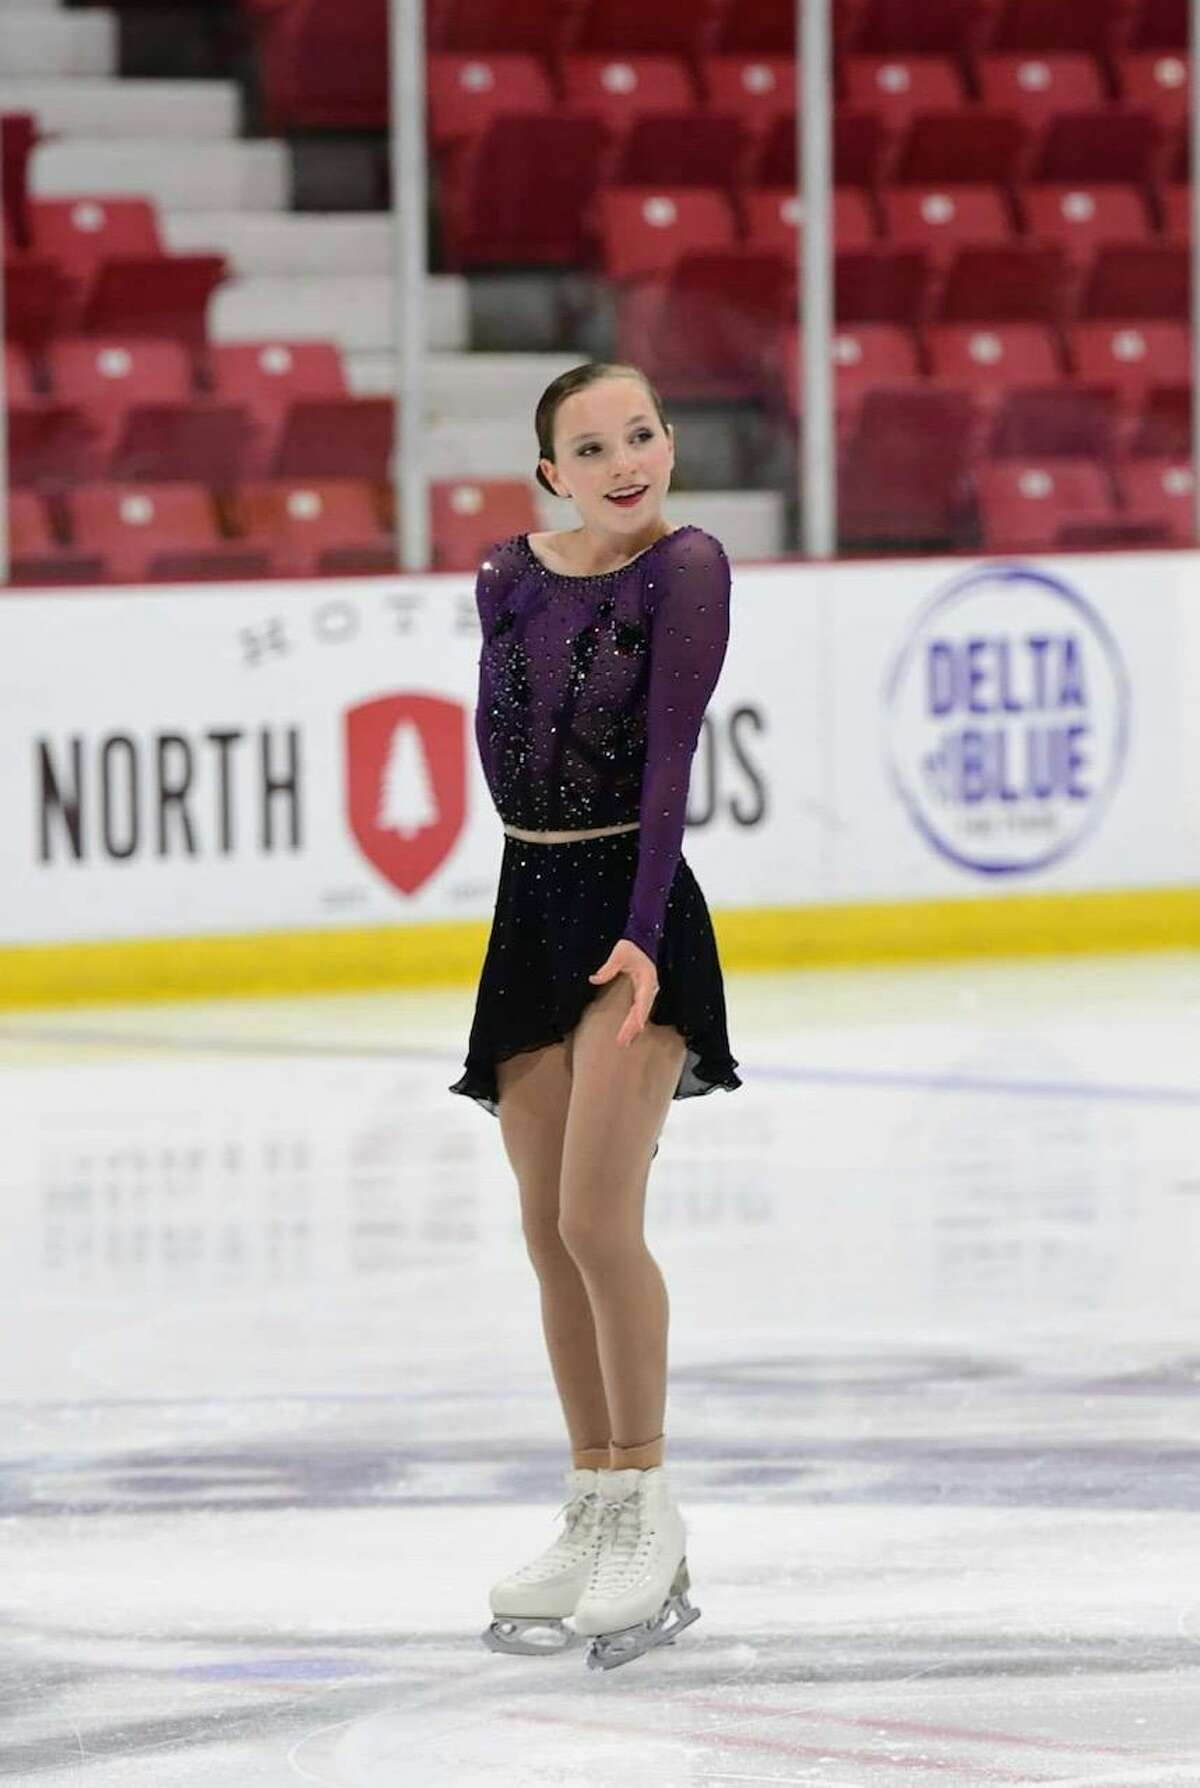 Emilia Murdock, 16 years old of Darien, will be representing the United States at The 2019 International Skating Union Junior Grand Prix of Figure Skating.